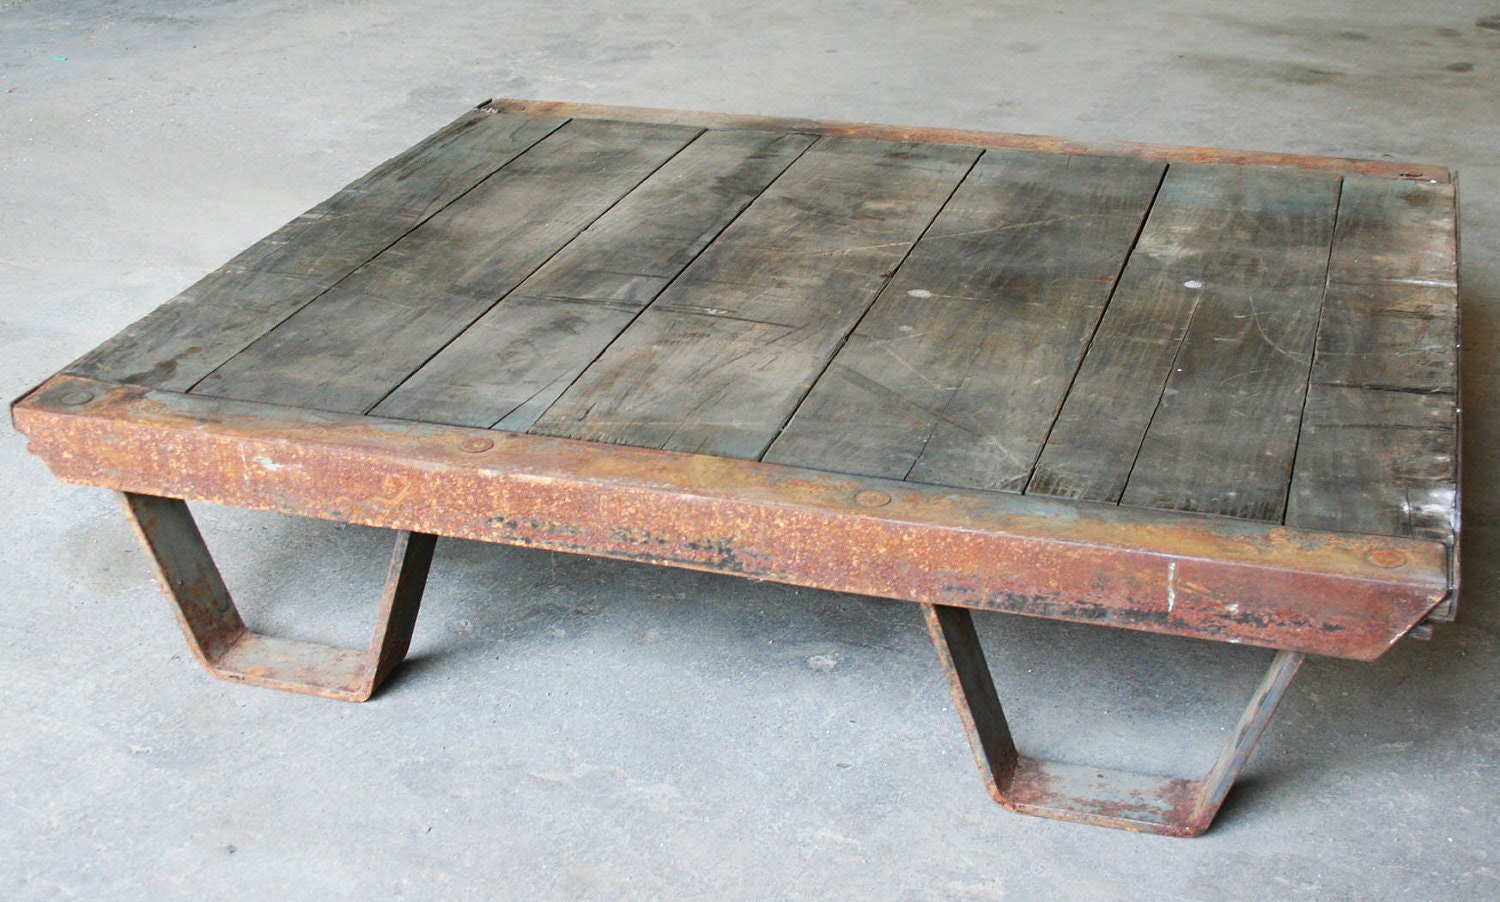 Vintage Industrial Coffee Table Pallet Industrial